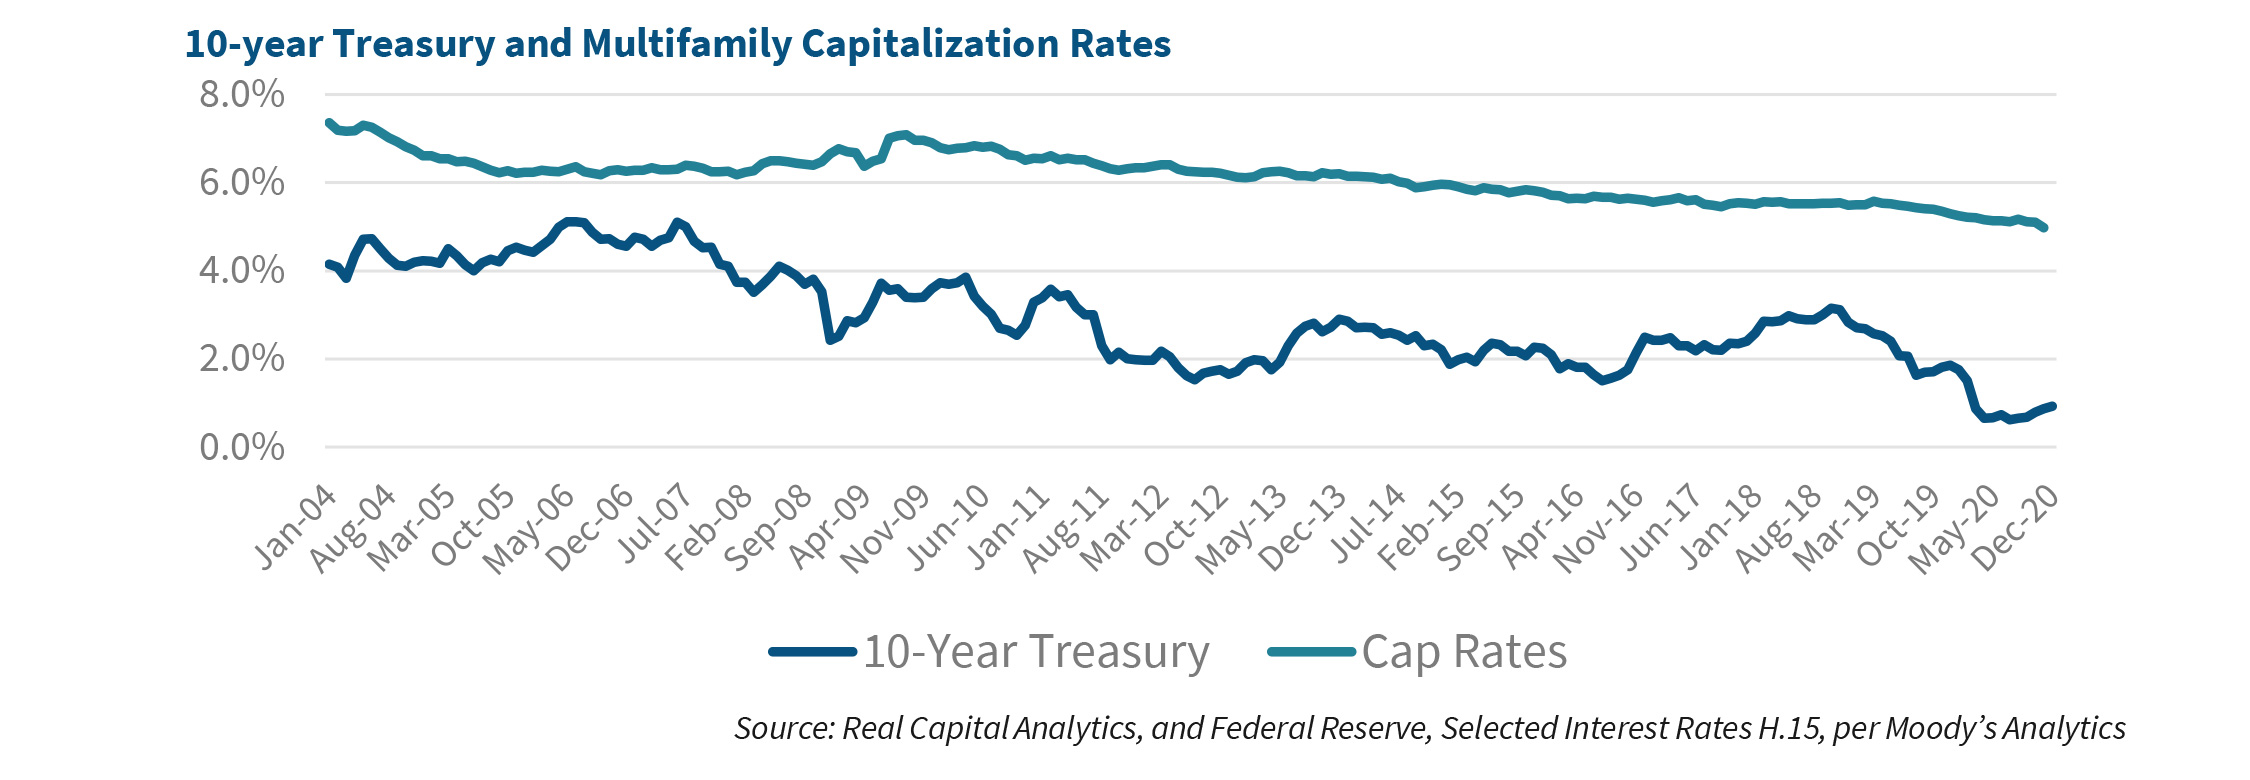 10-year Treasury and Multifamily Capitalization Rates